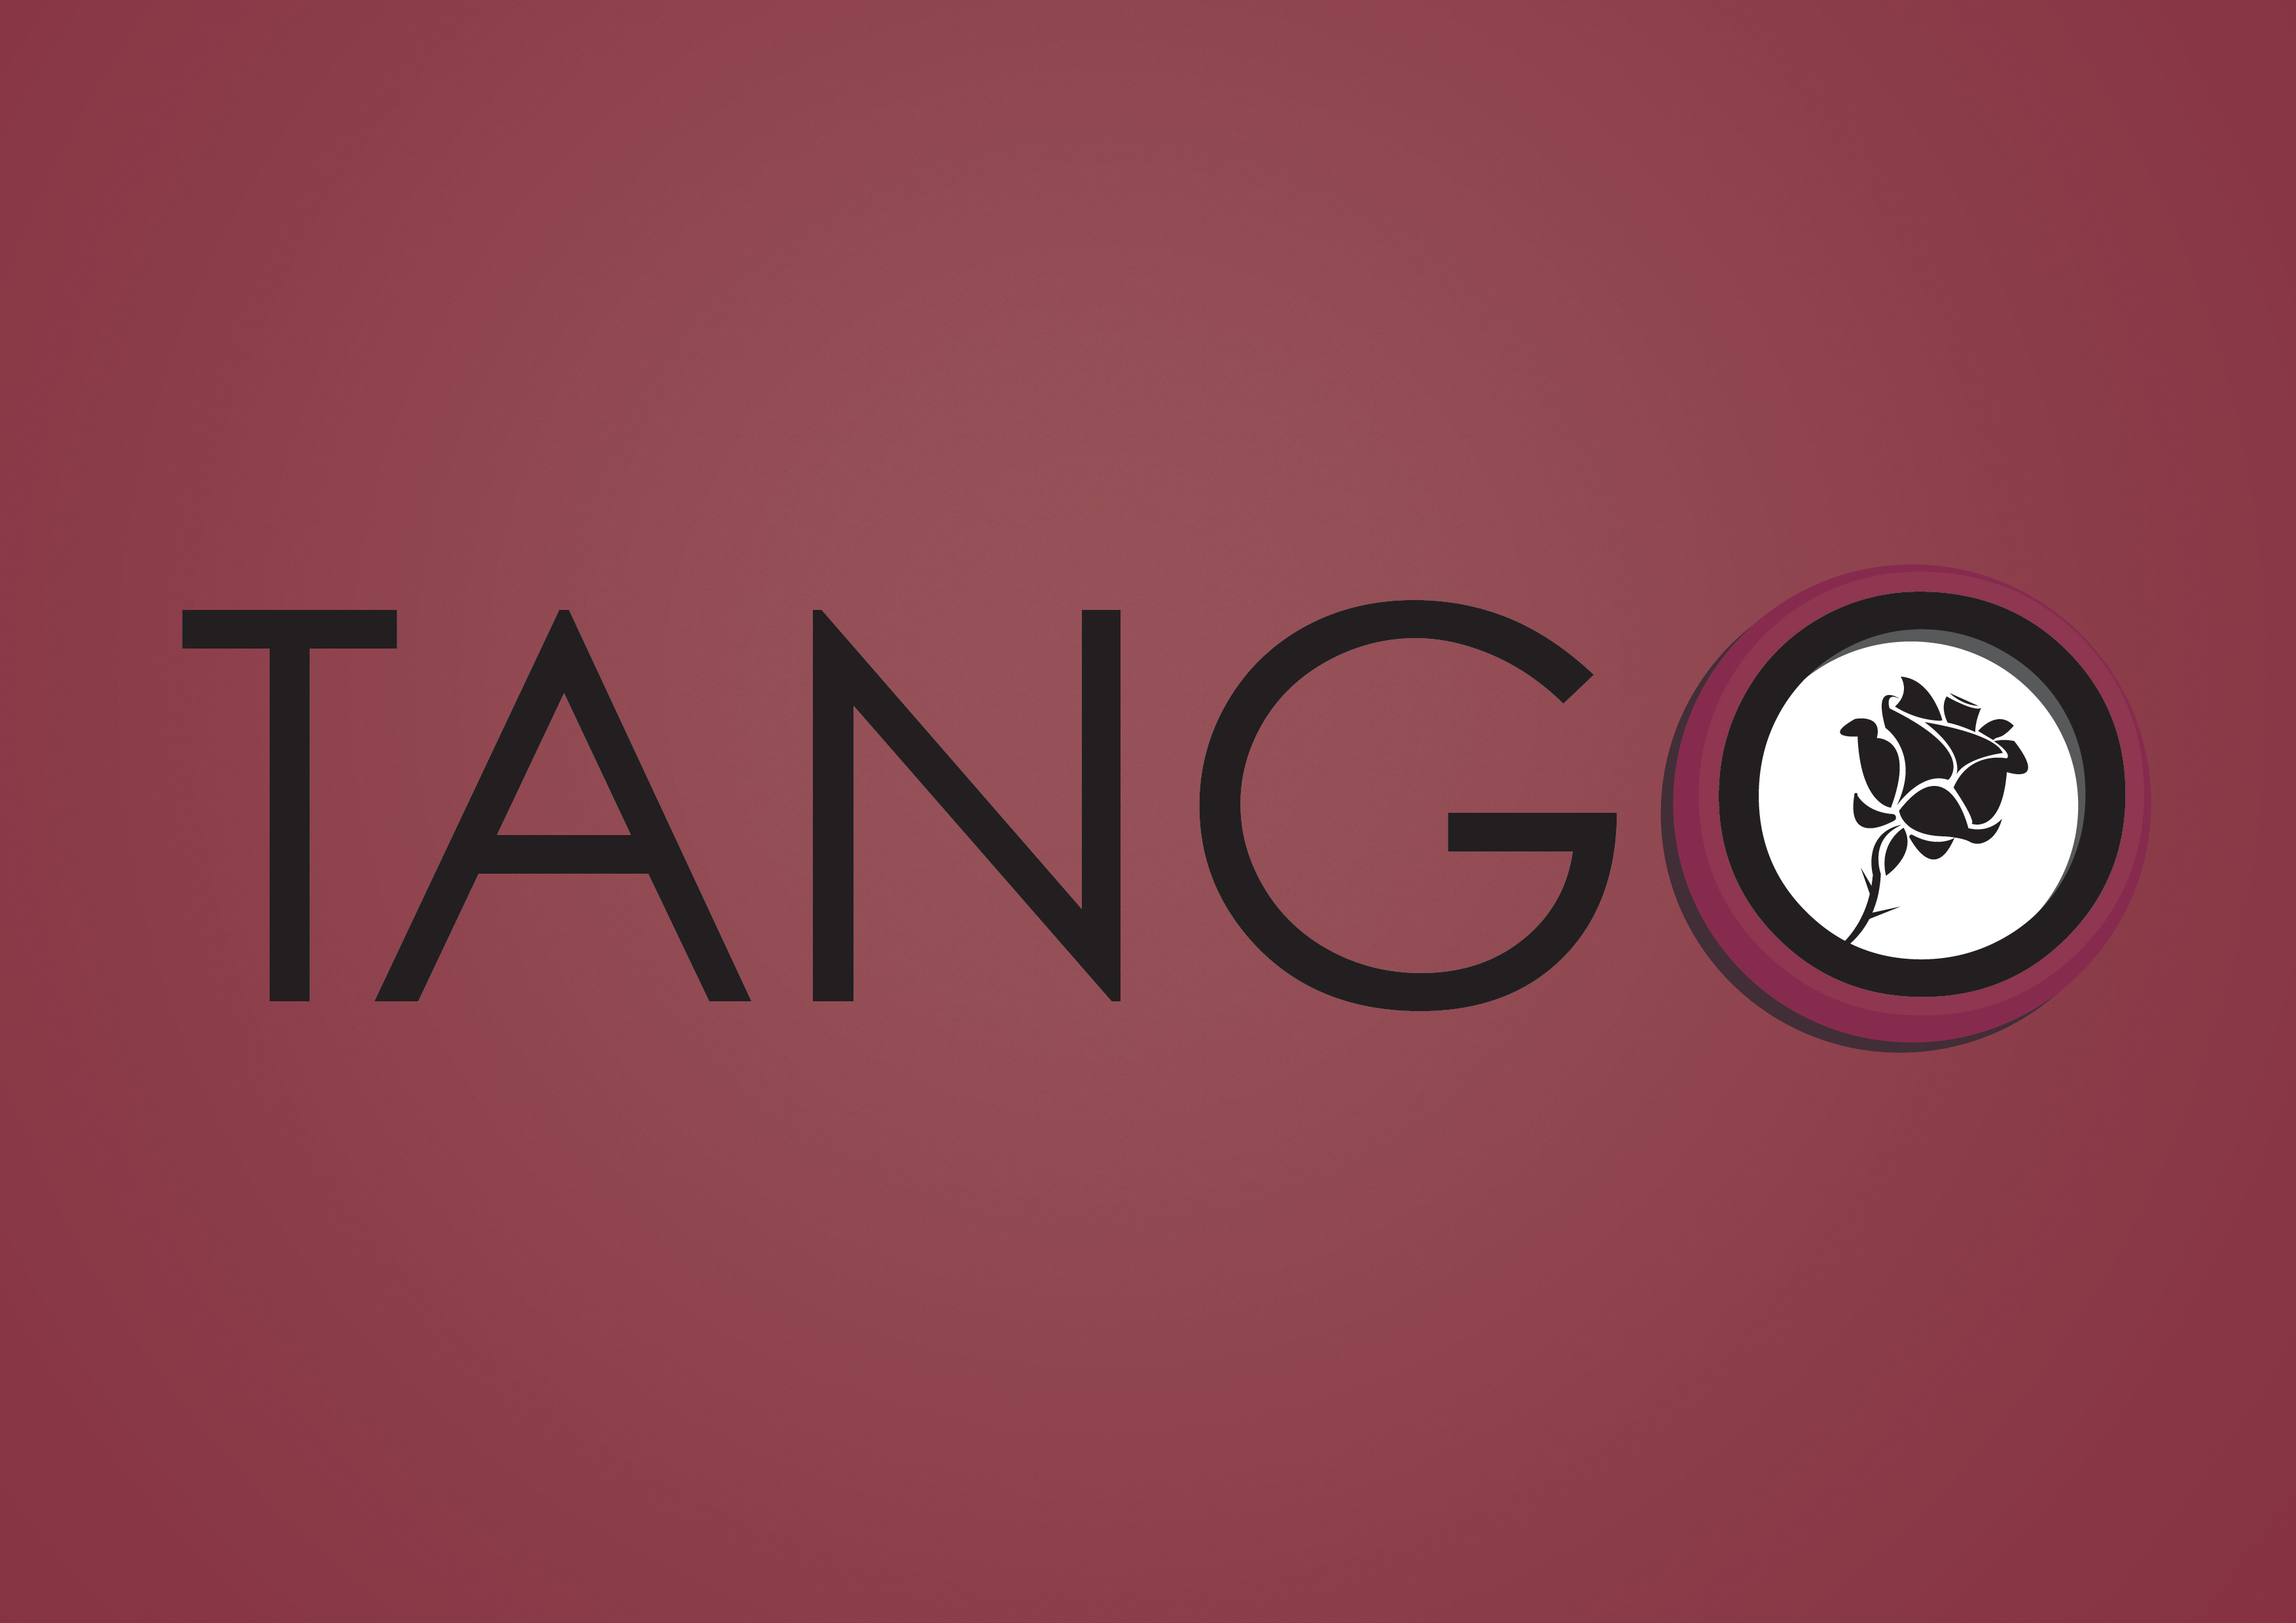 Word and Image Expression - Tango